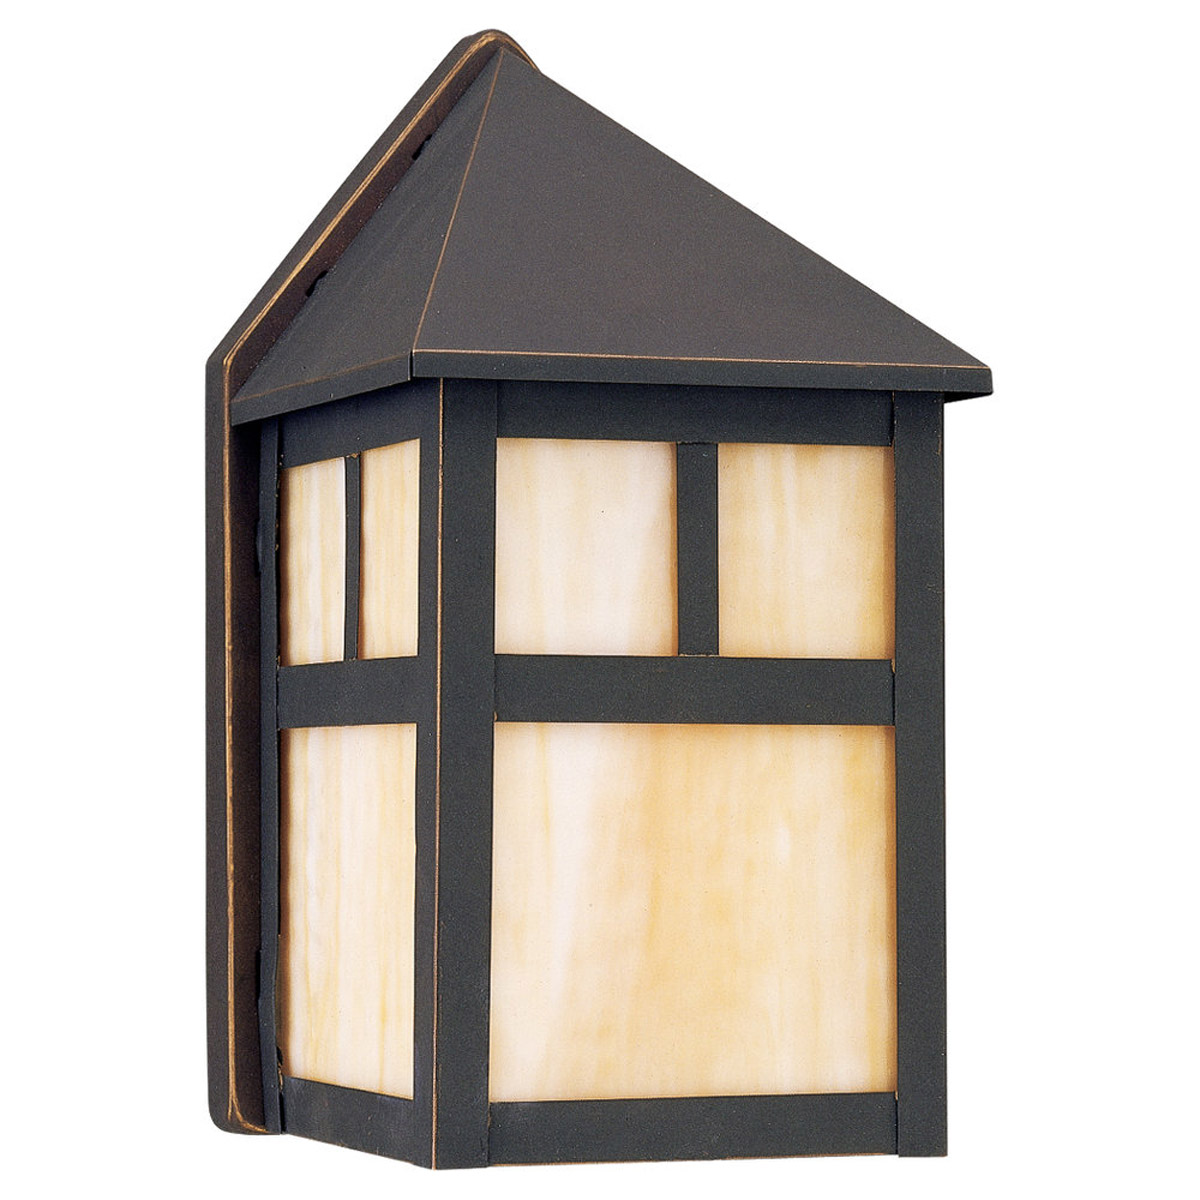 Sea Gull Lighting Prairie Statement 1 Light Outdoor Wall Lantern in Antique Bronze 8408-71 photo